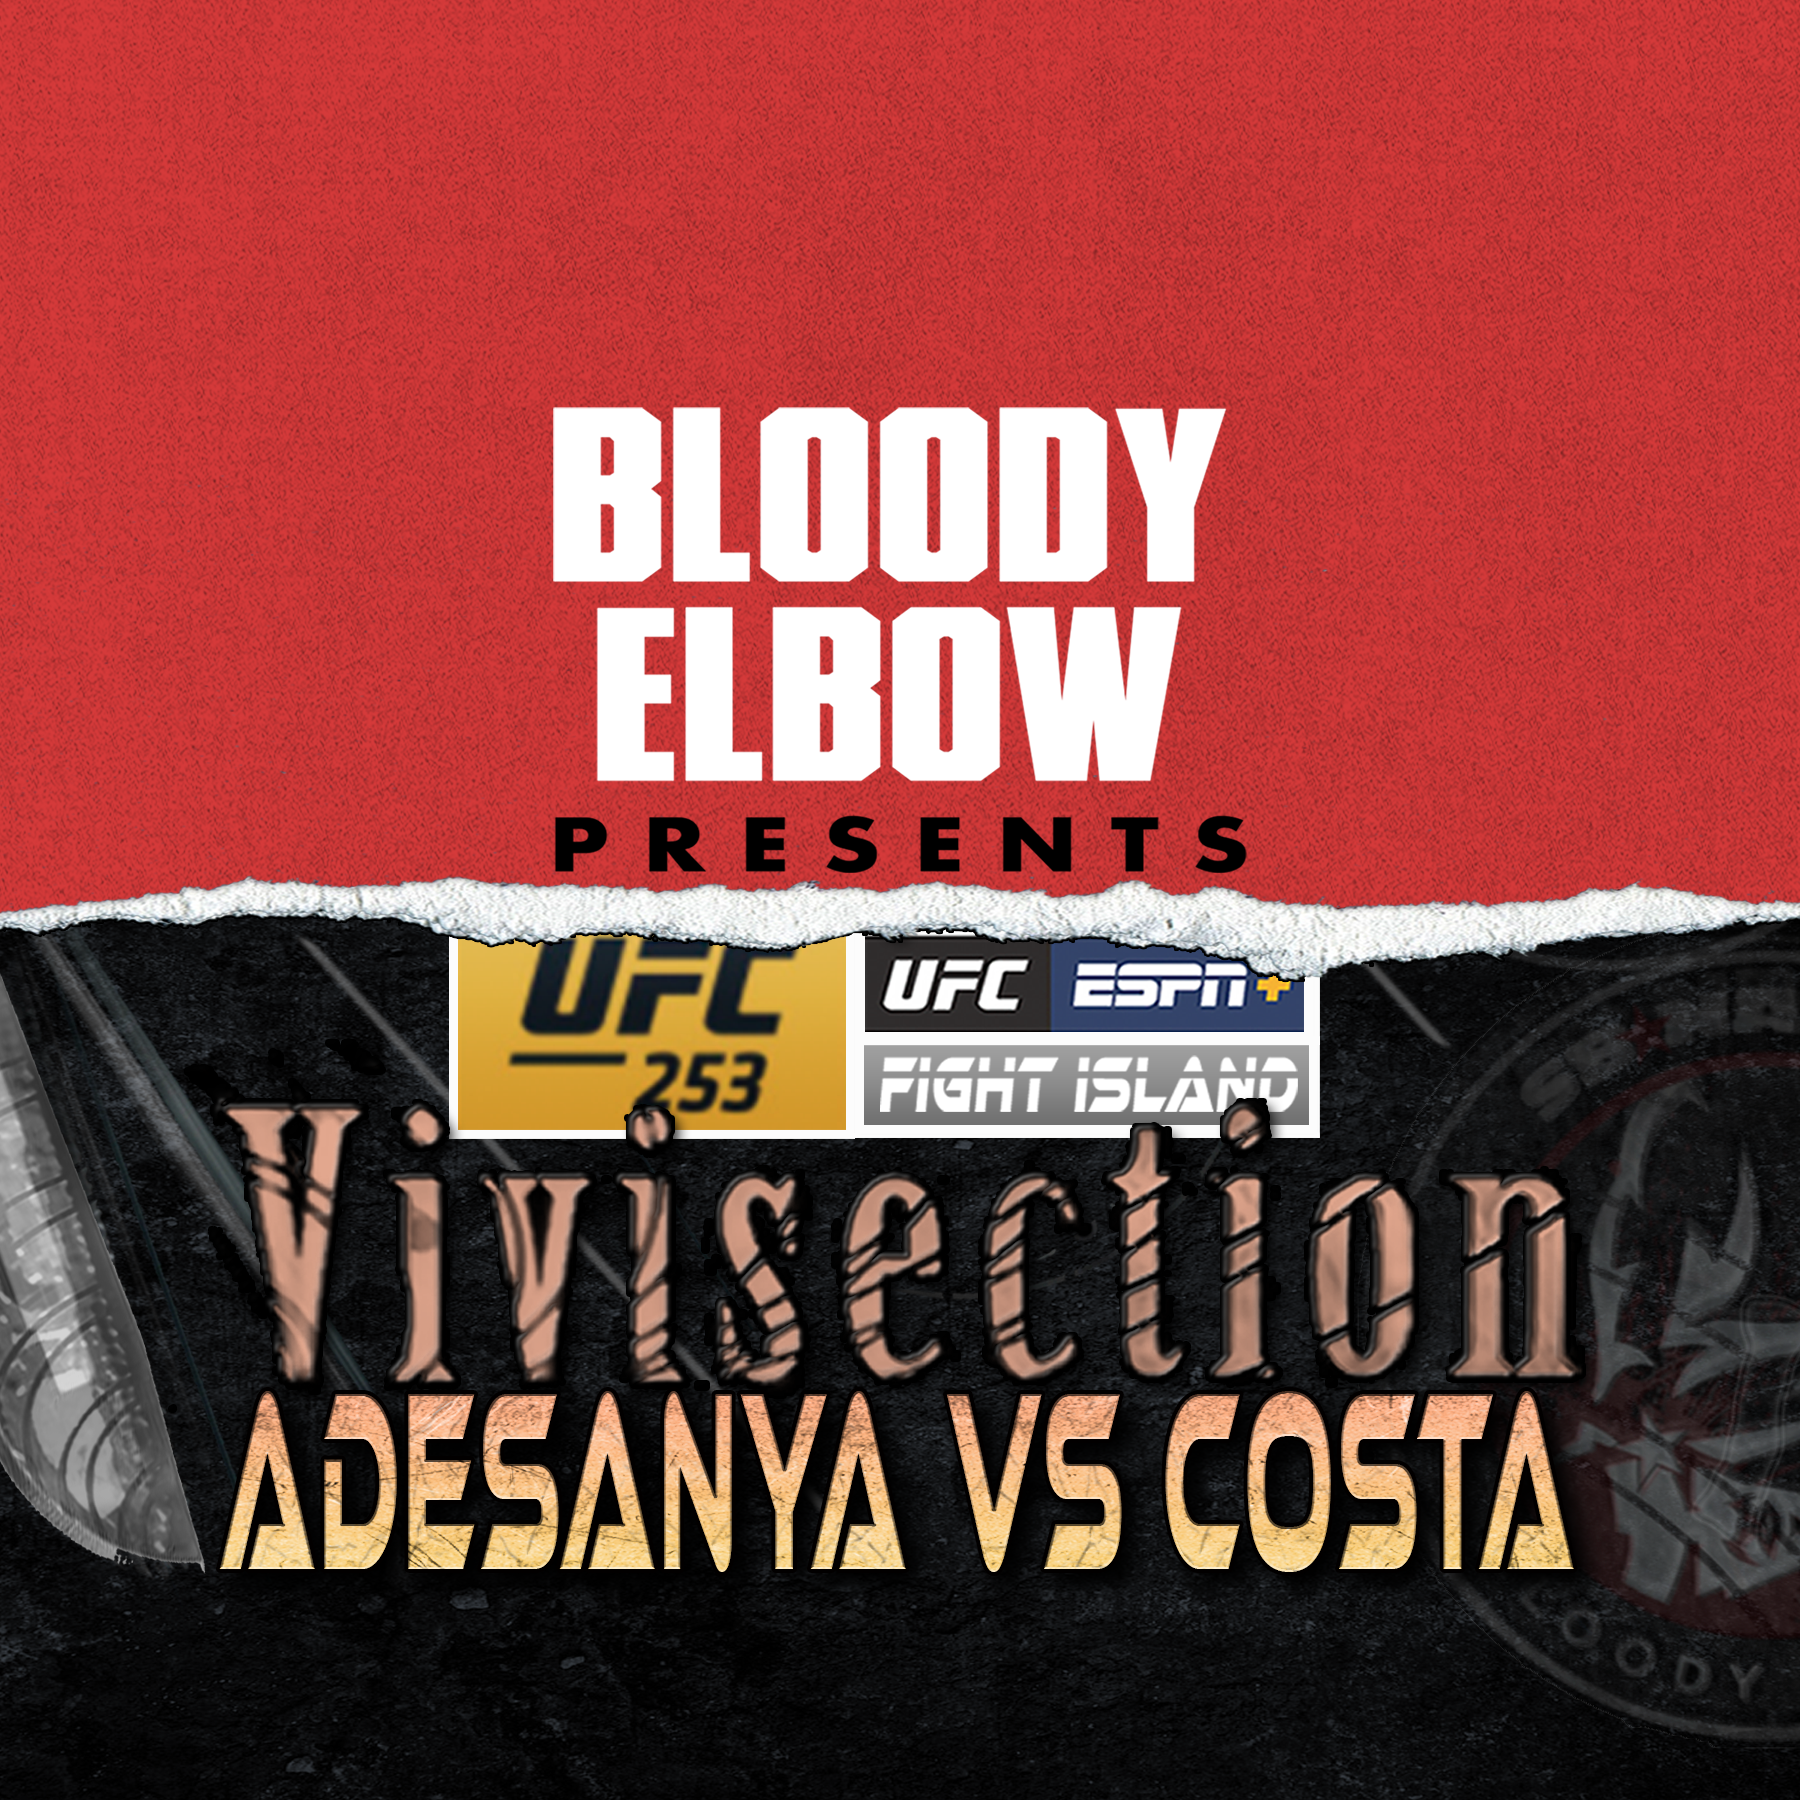 MMA Vivi, The MMA Vivisection, UFC 253, UFC Preview, UFC Picks & Predictions, Israel Adesanya vs Paulo Costa, Dominick Reyes vs Jan Blachowicz, UFC Podcast